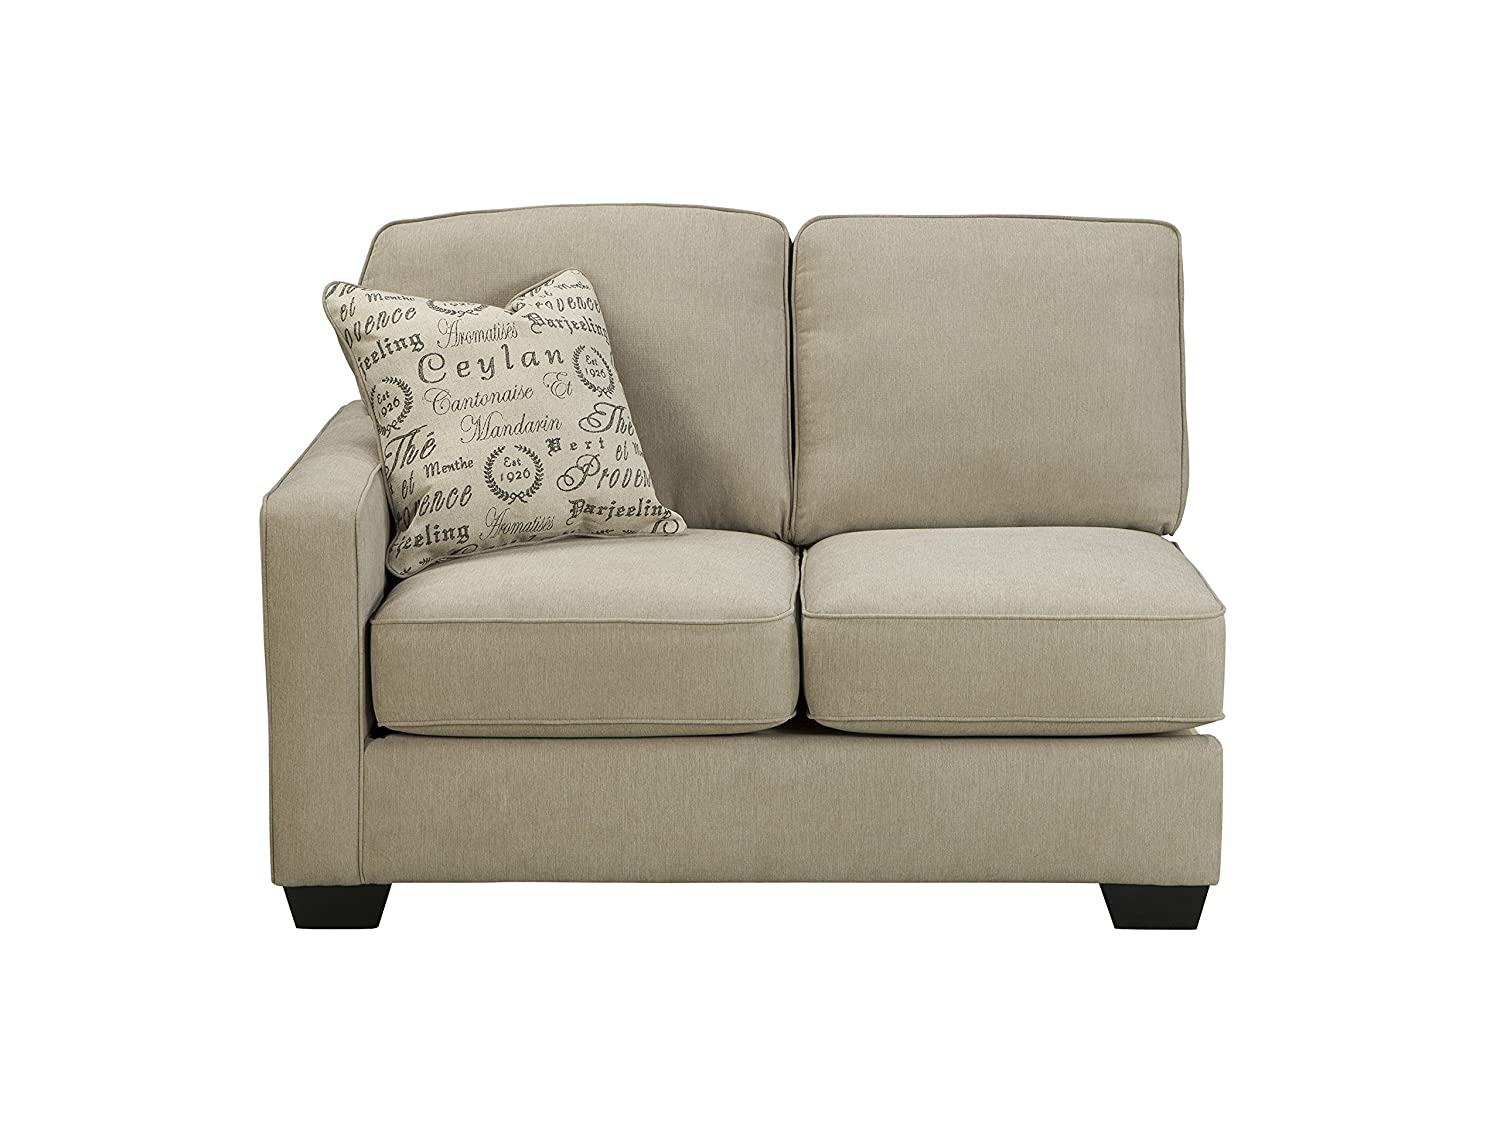 Amazon.com Ashley Alenya 16600-55-67 2PC Sectional Sofa with Left Arm Facing Loveseat Right Arm Facing Sofa Pillows with Print Pattern and Track Arms in ...  sc 1 st  Amazon.com : loveseat sectional sofa - Sectionals, Sofas & Couches